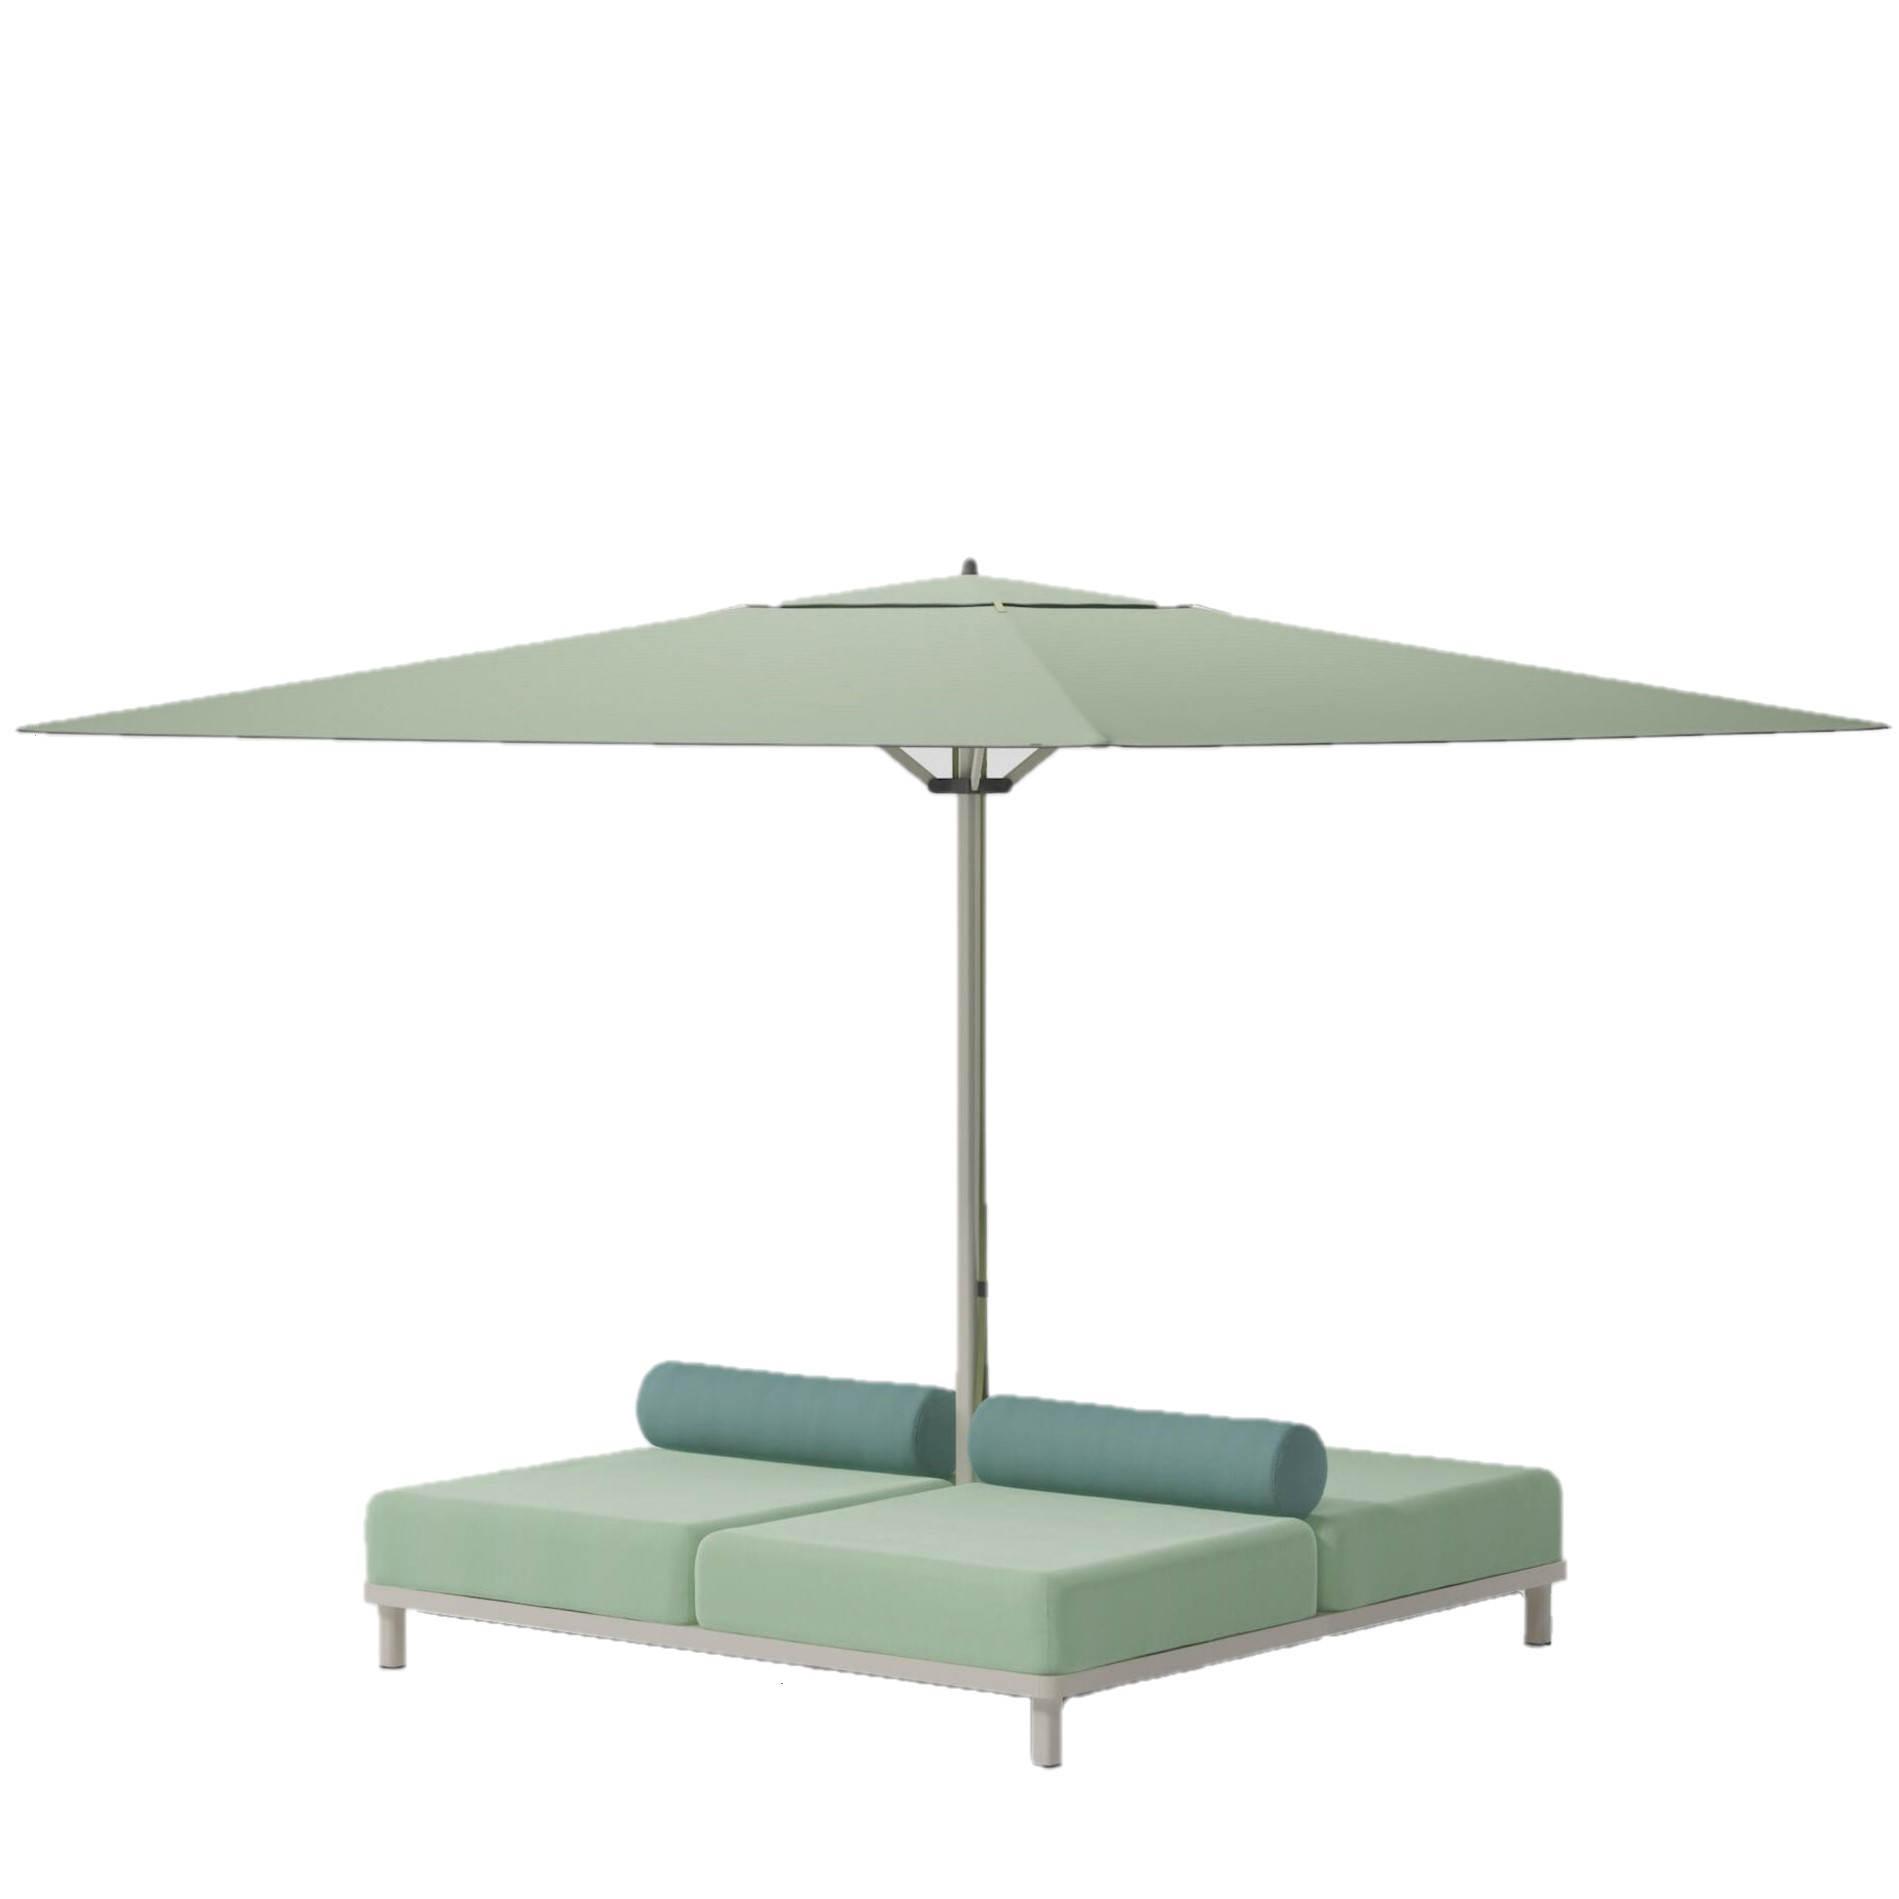 Product Image Meteo Daybed Base Parasol